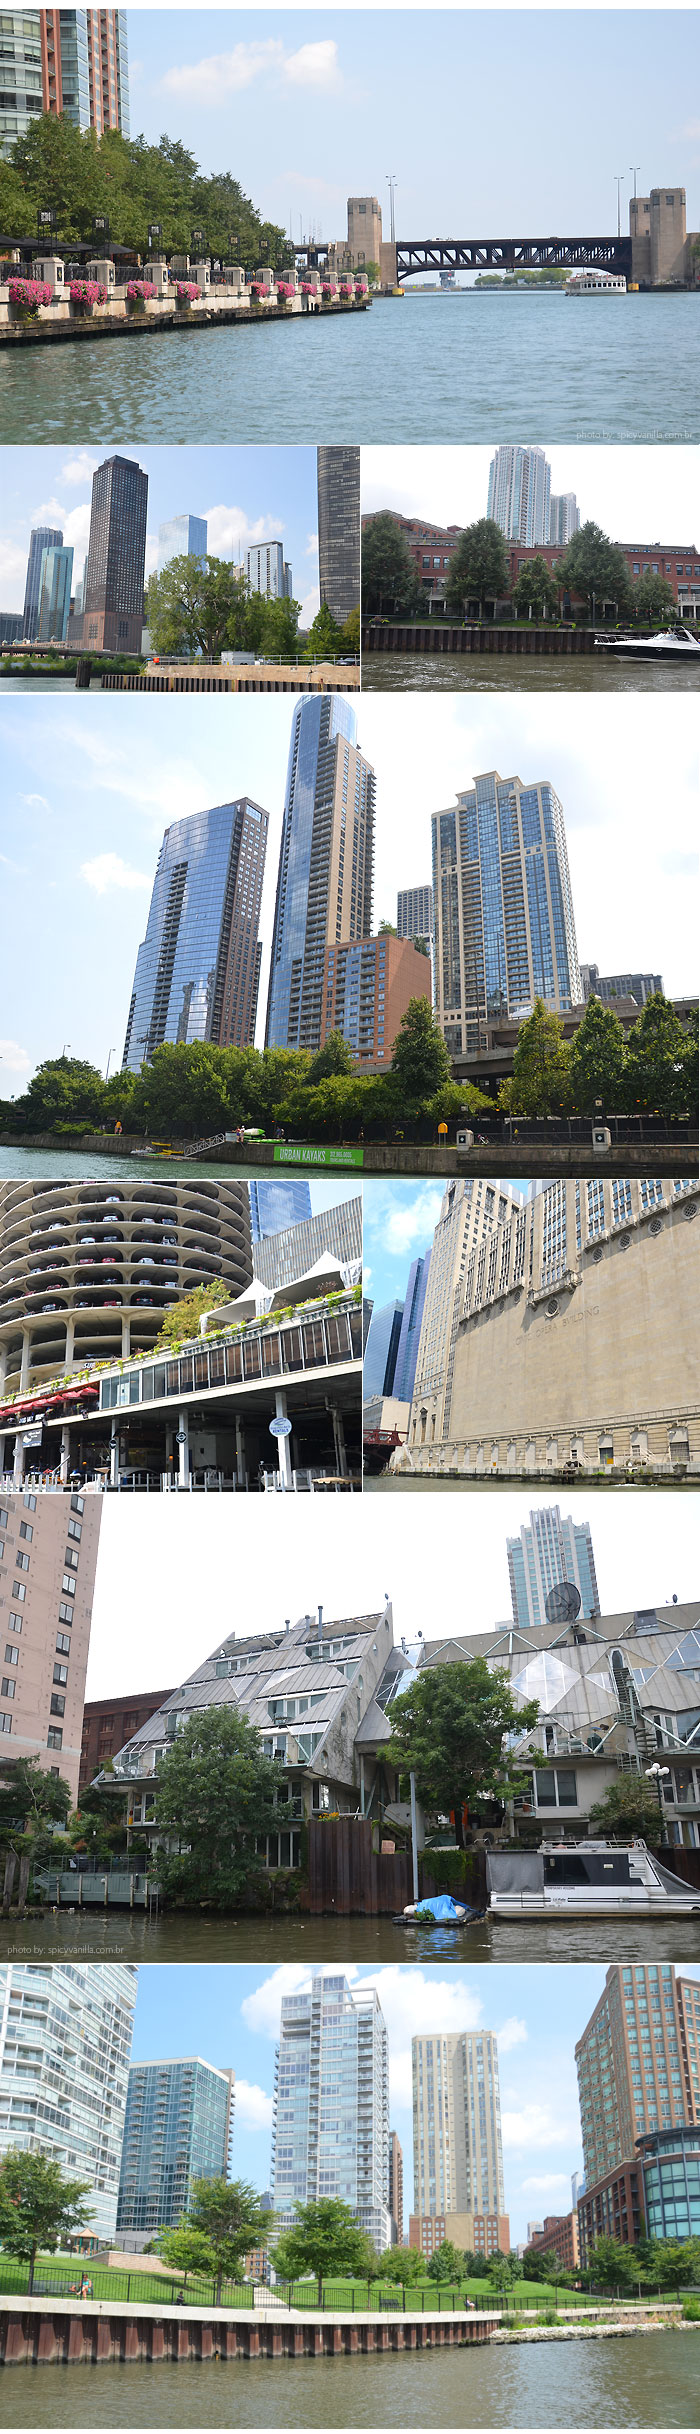 Architecture_River_Cruise_chicago